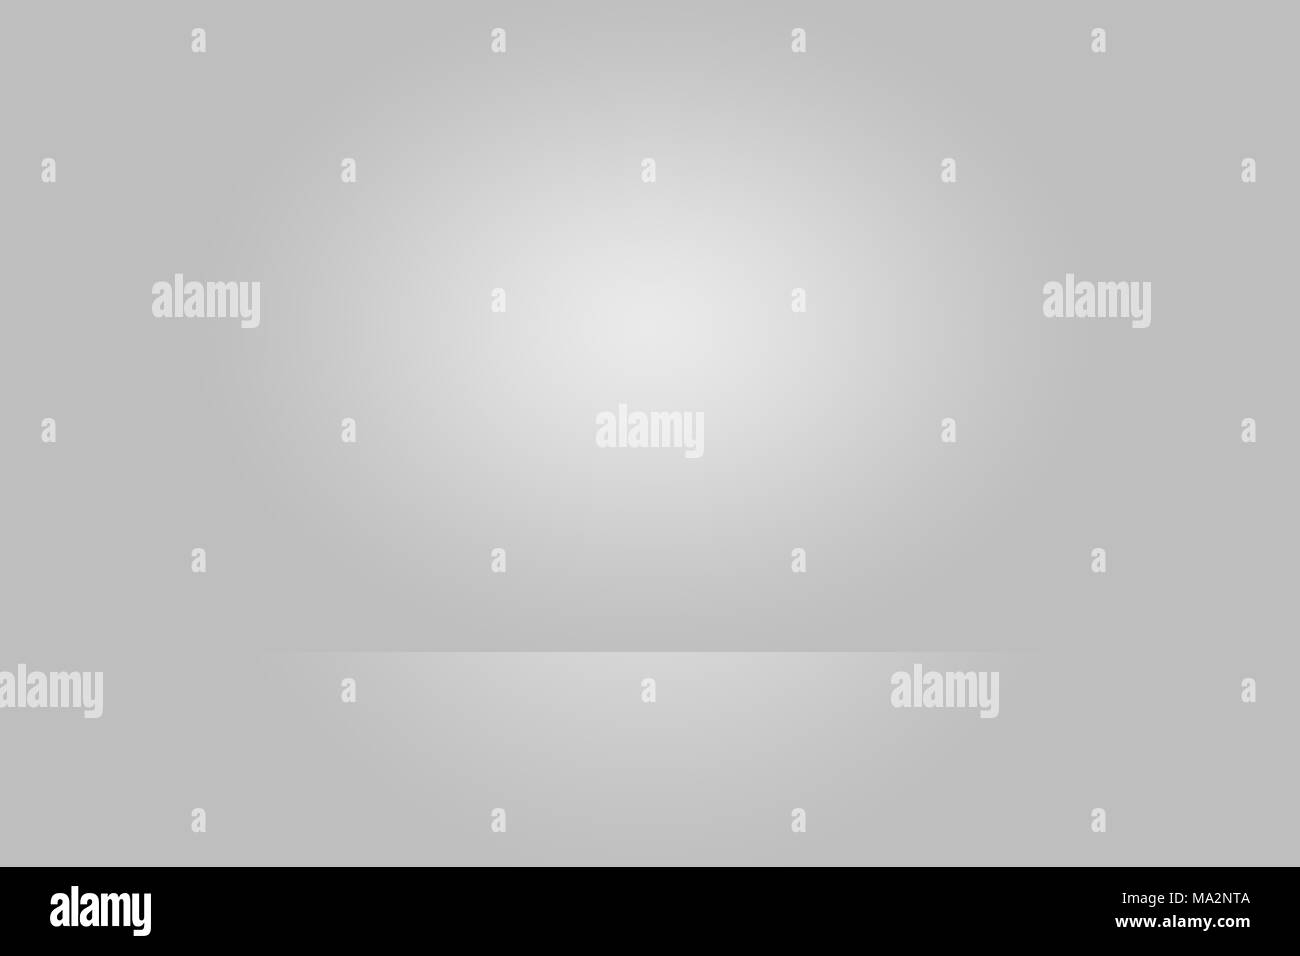 Color Gradient Texture Black and White Stock Photos & Images - Alamy